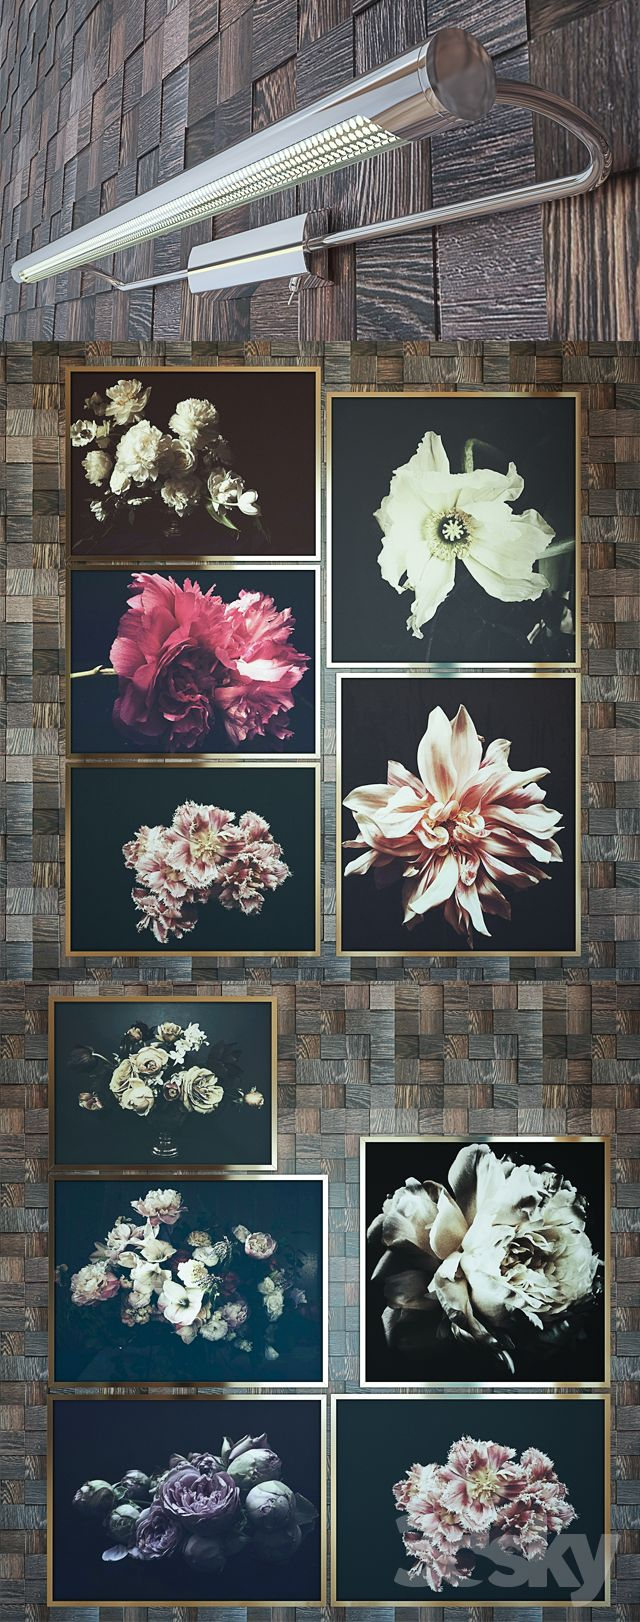 3d models: Frame - Collection of paintings of flowers. 10 paintings. Luminaire for lighting Paulmann 99,077 paintings